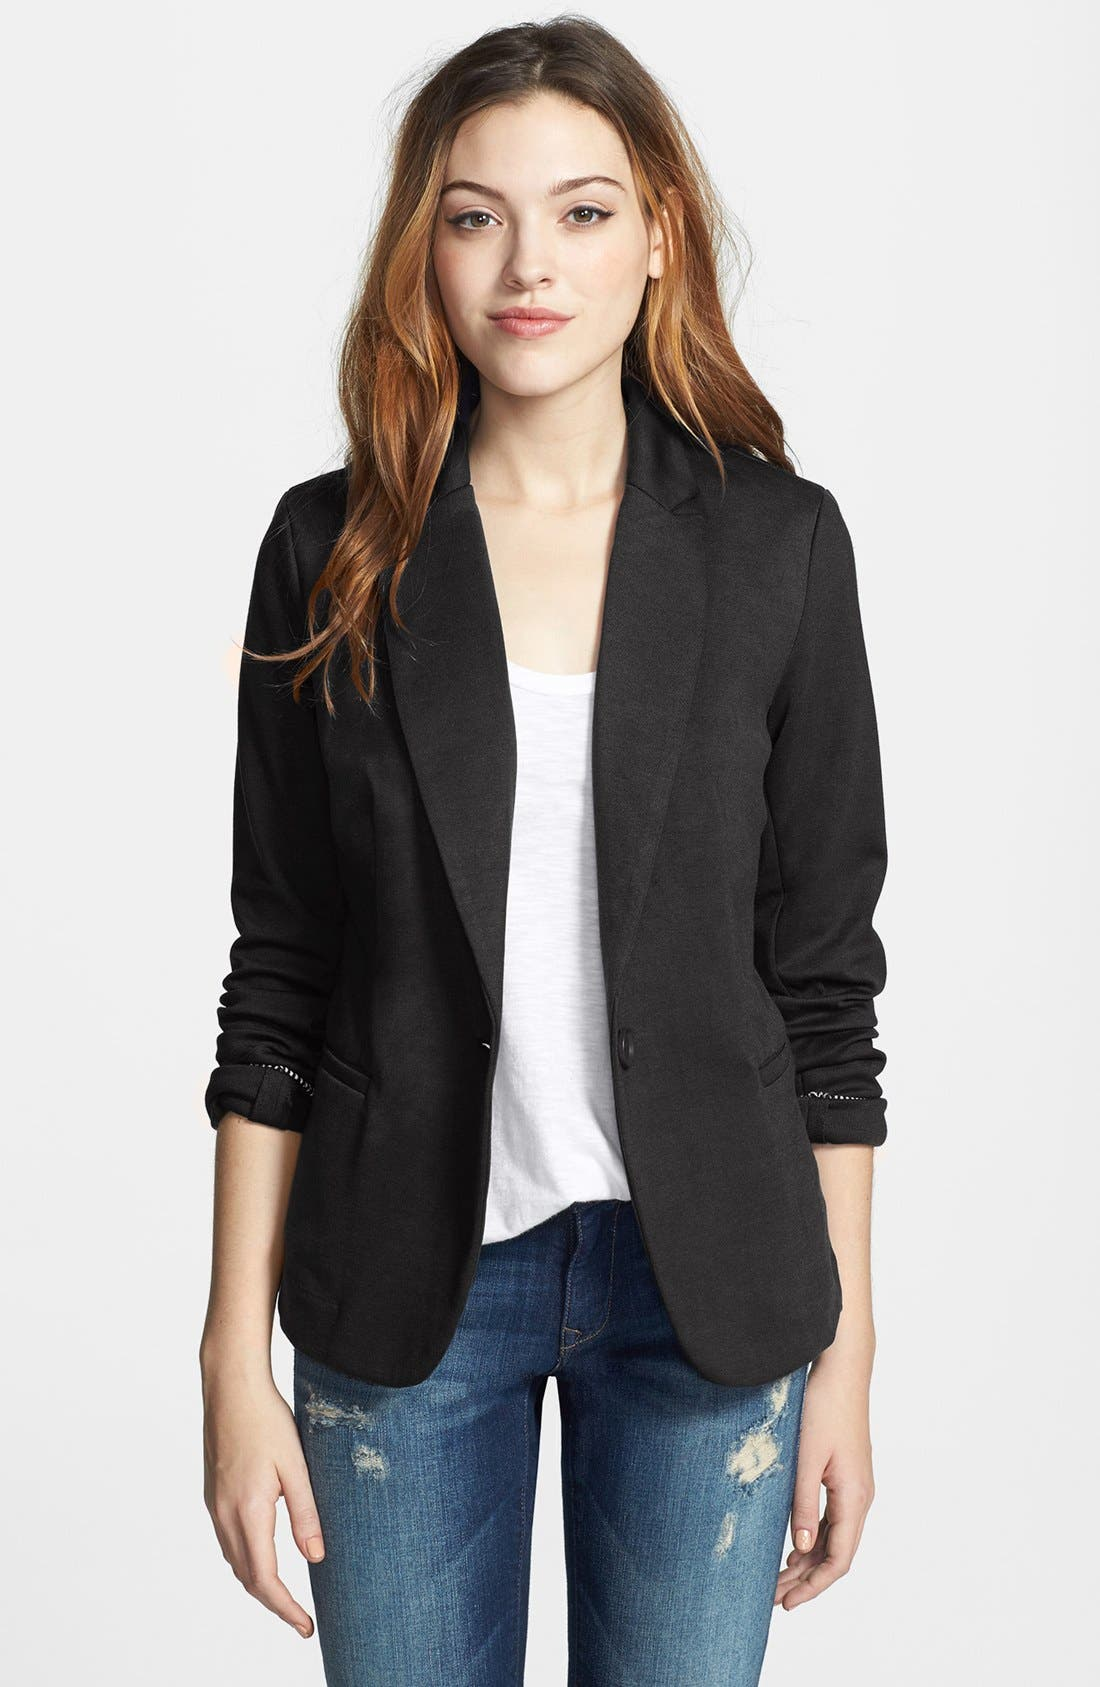 Work Jackets for Women | Nordstrom